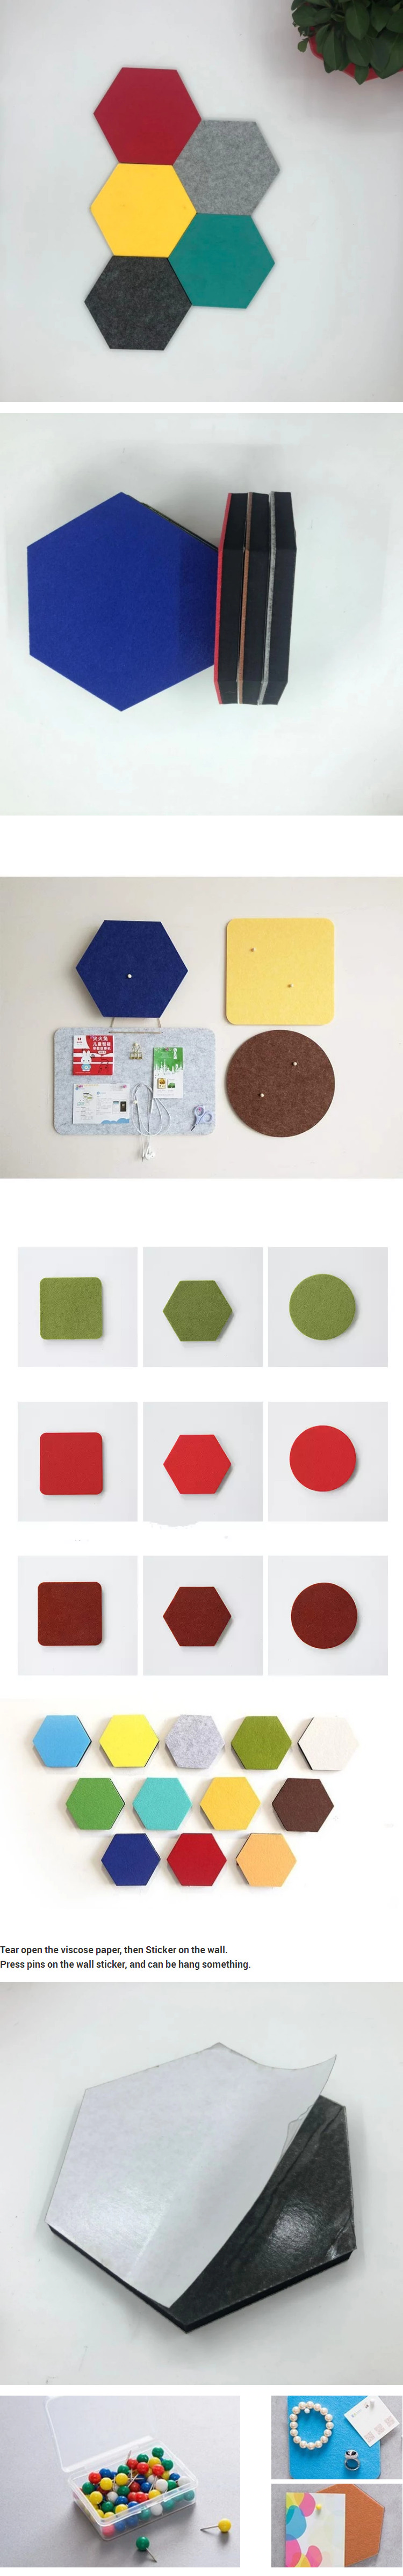 Self adhesive cork pin sandwich felt board memo ตกแต่ง swatch wall